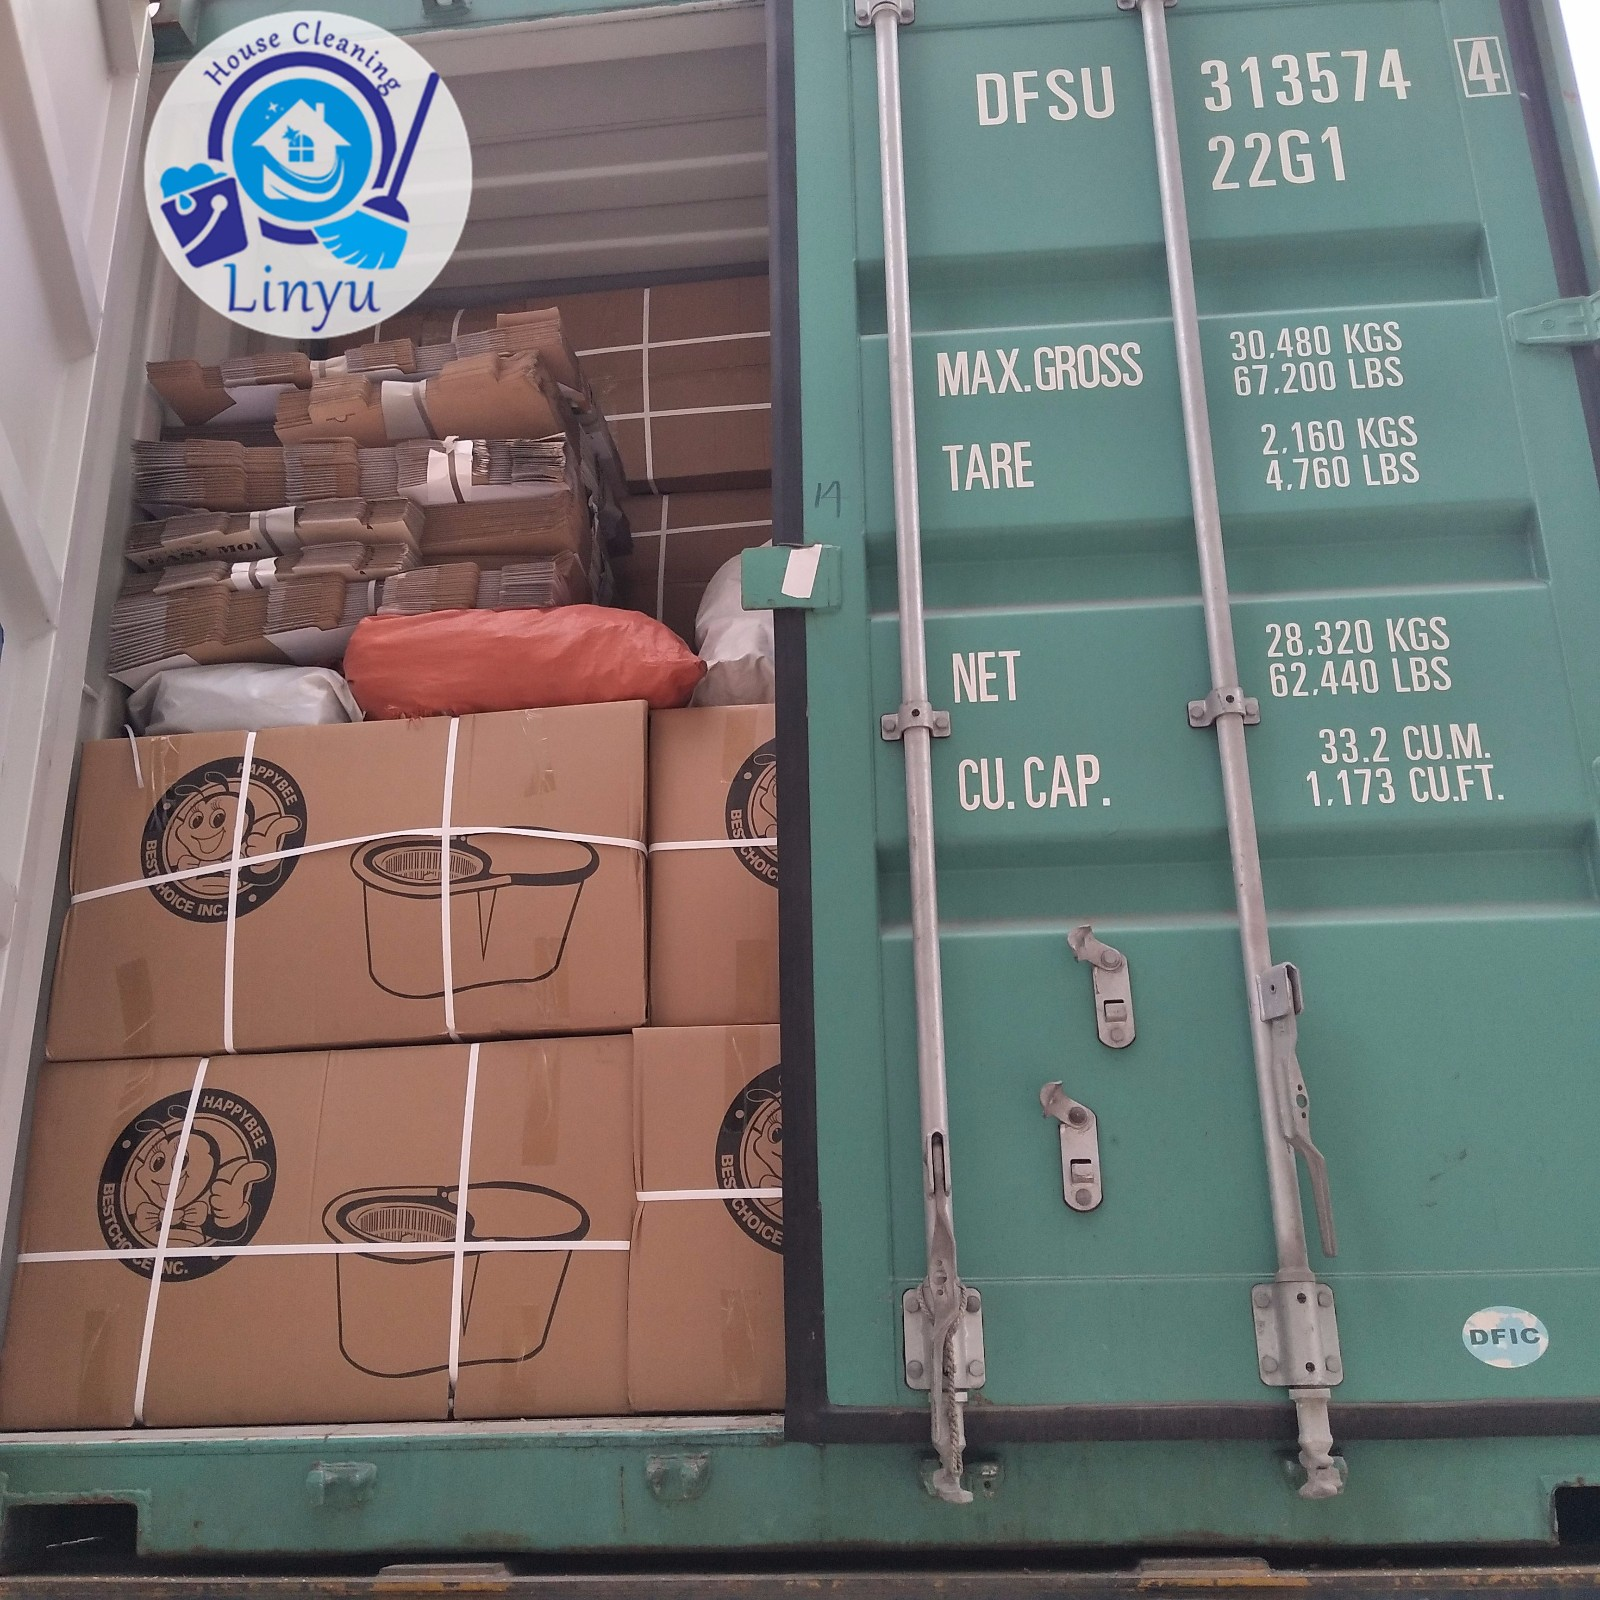 Container loading for Bolivia